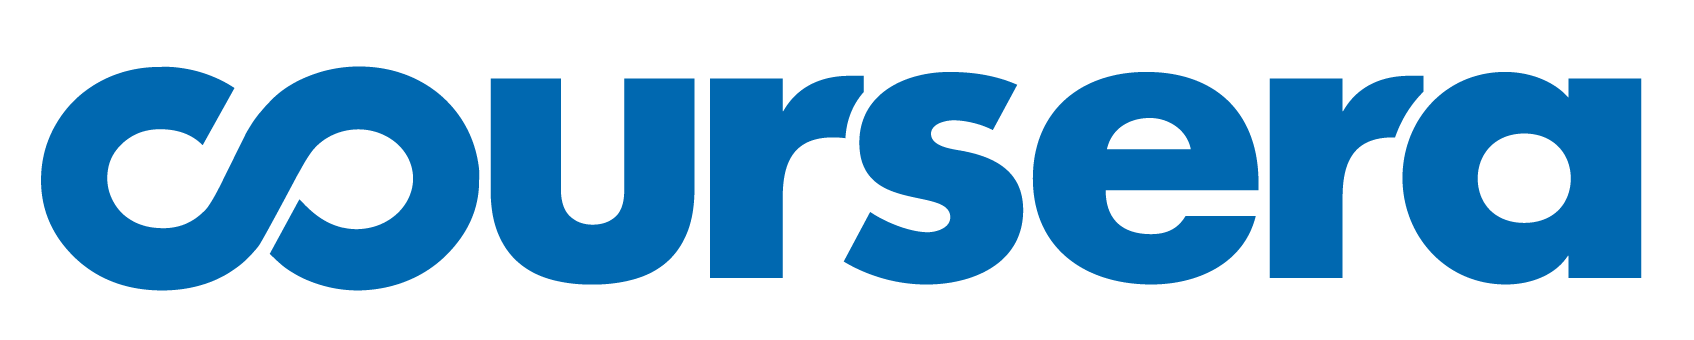 Image result for coursera logo